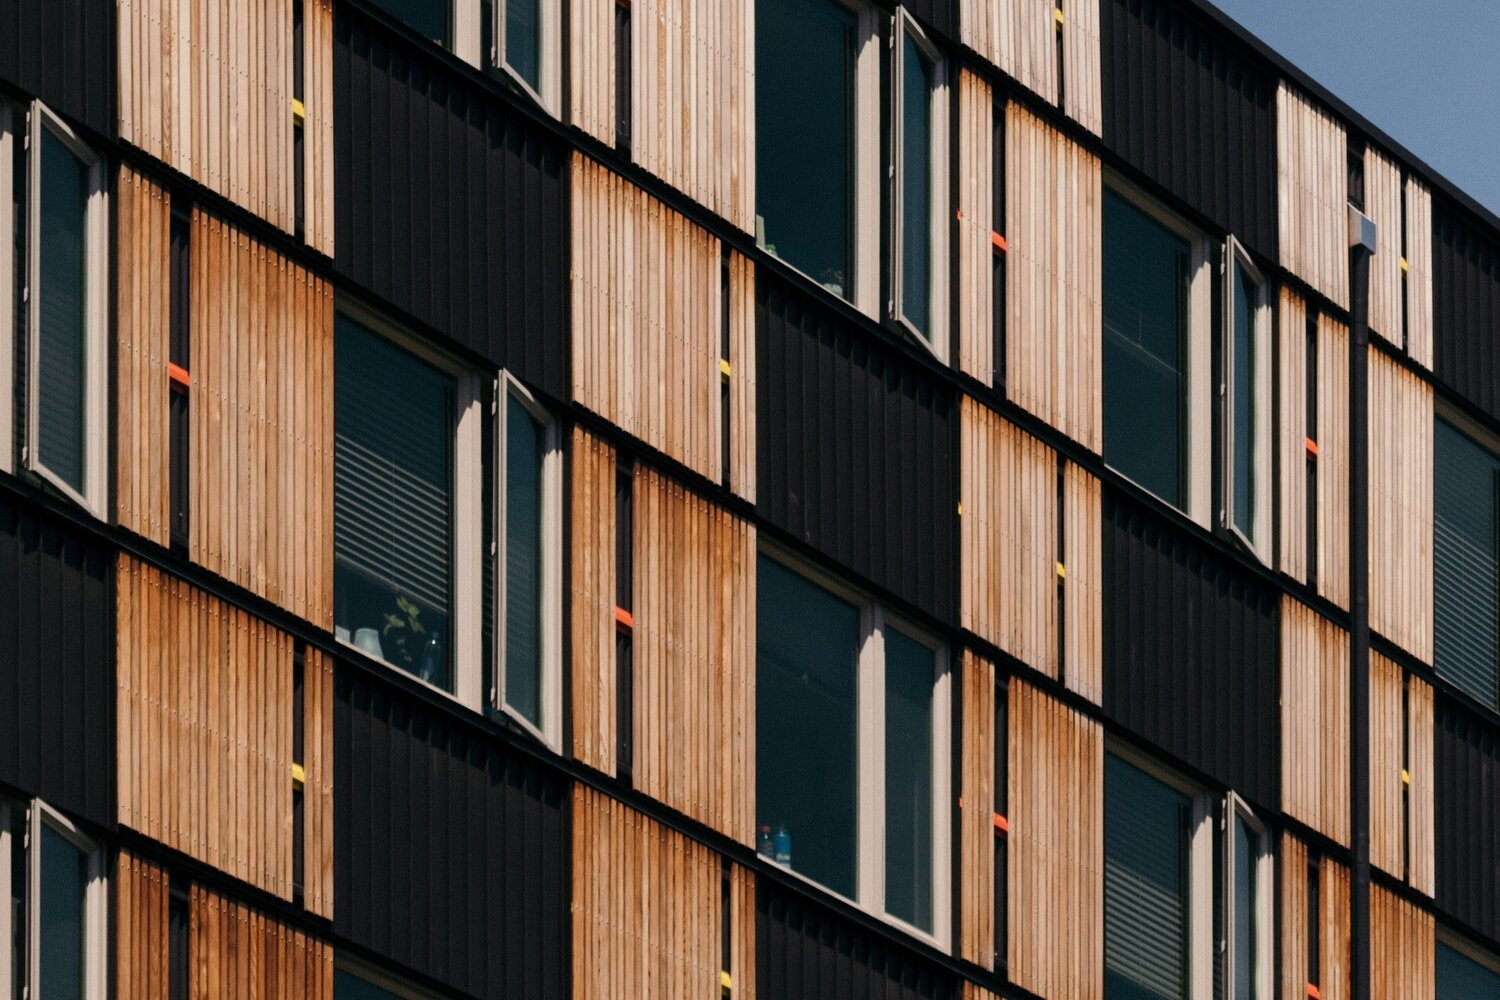 Four Ways Shipping Container Buildings Can Change Urban